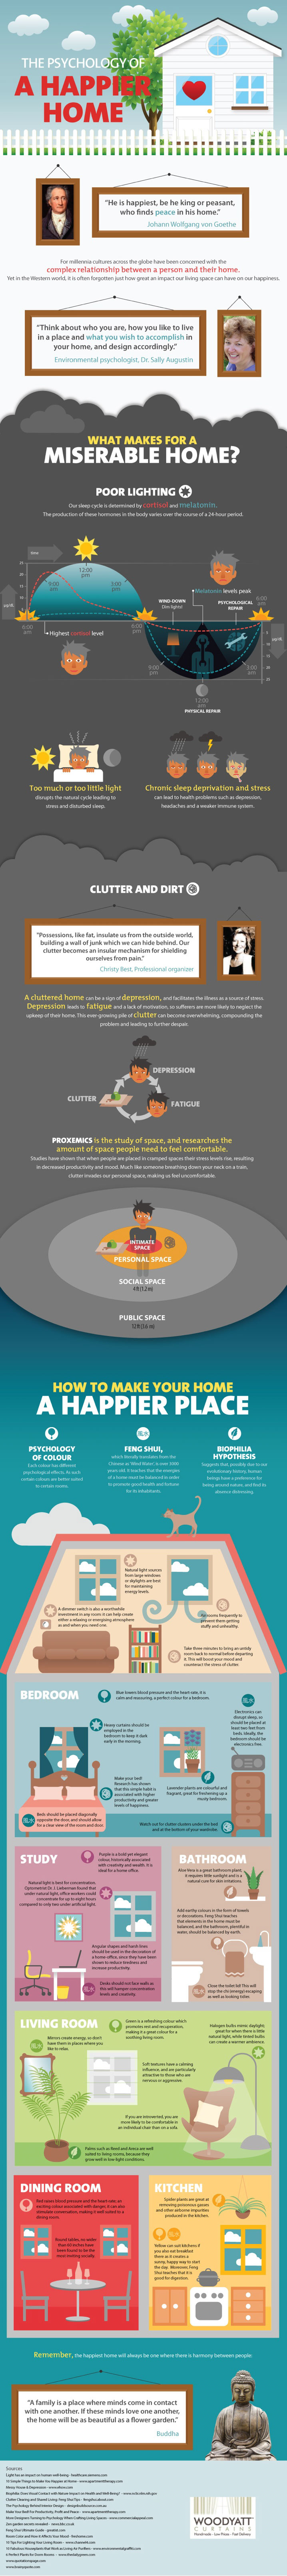 Make Happy Home-Infographic